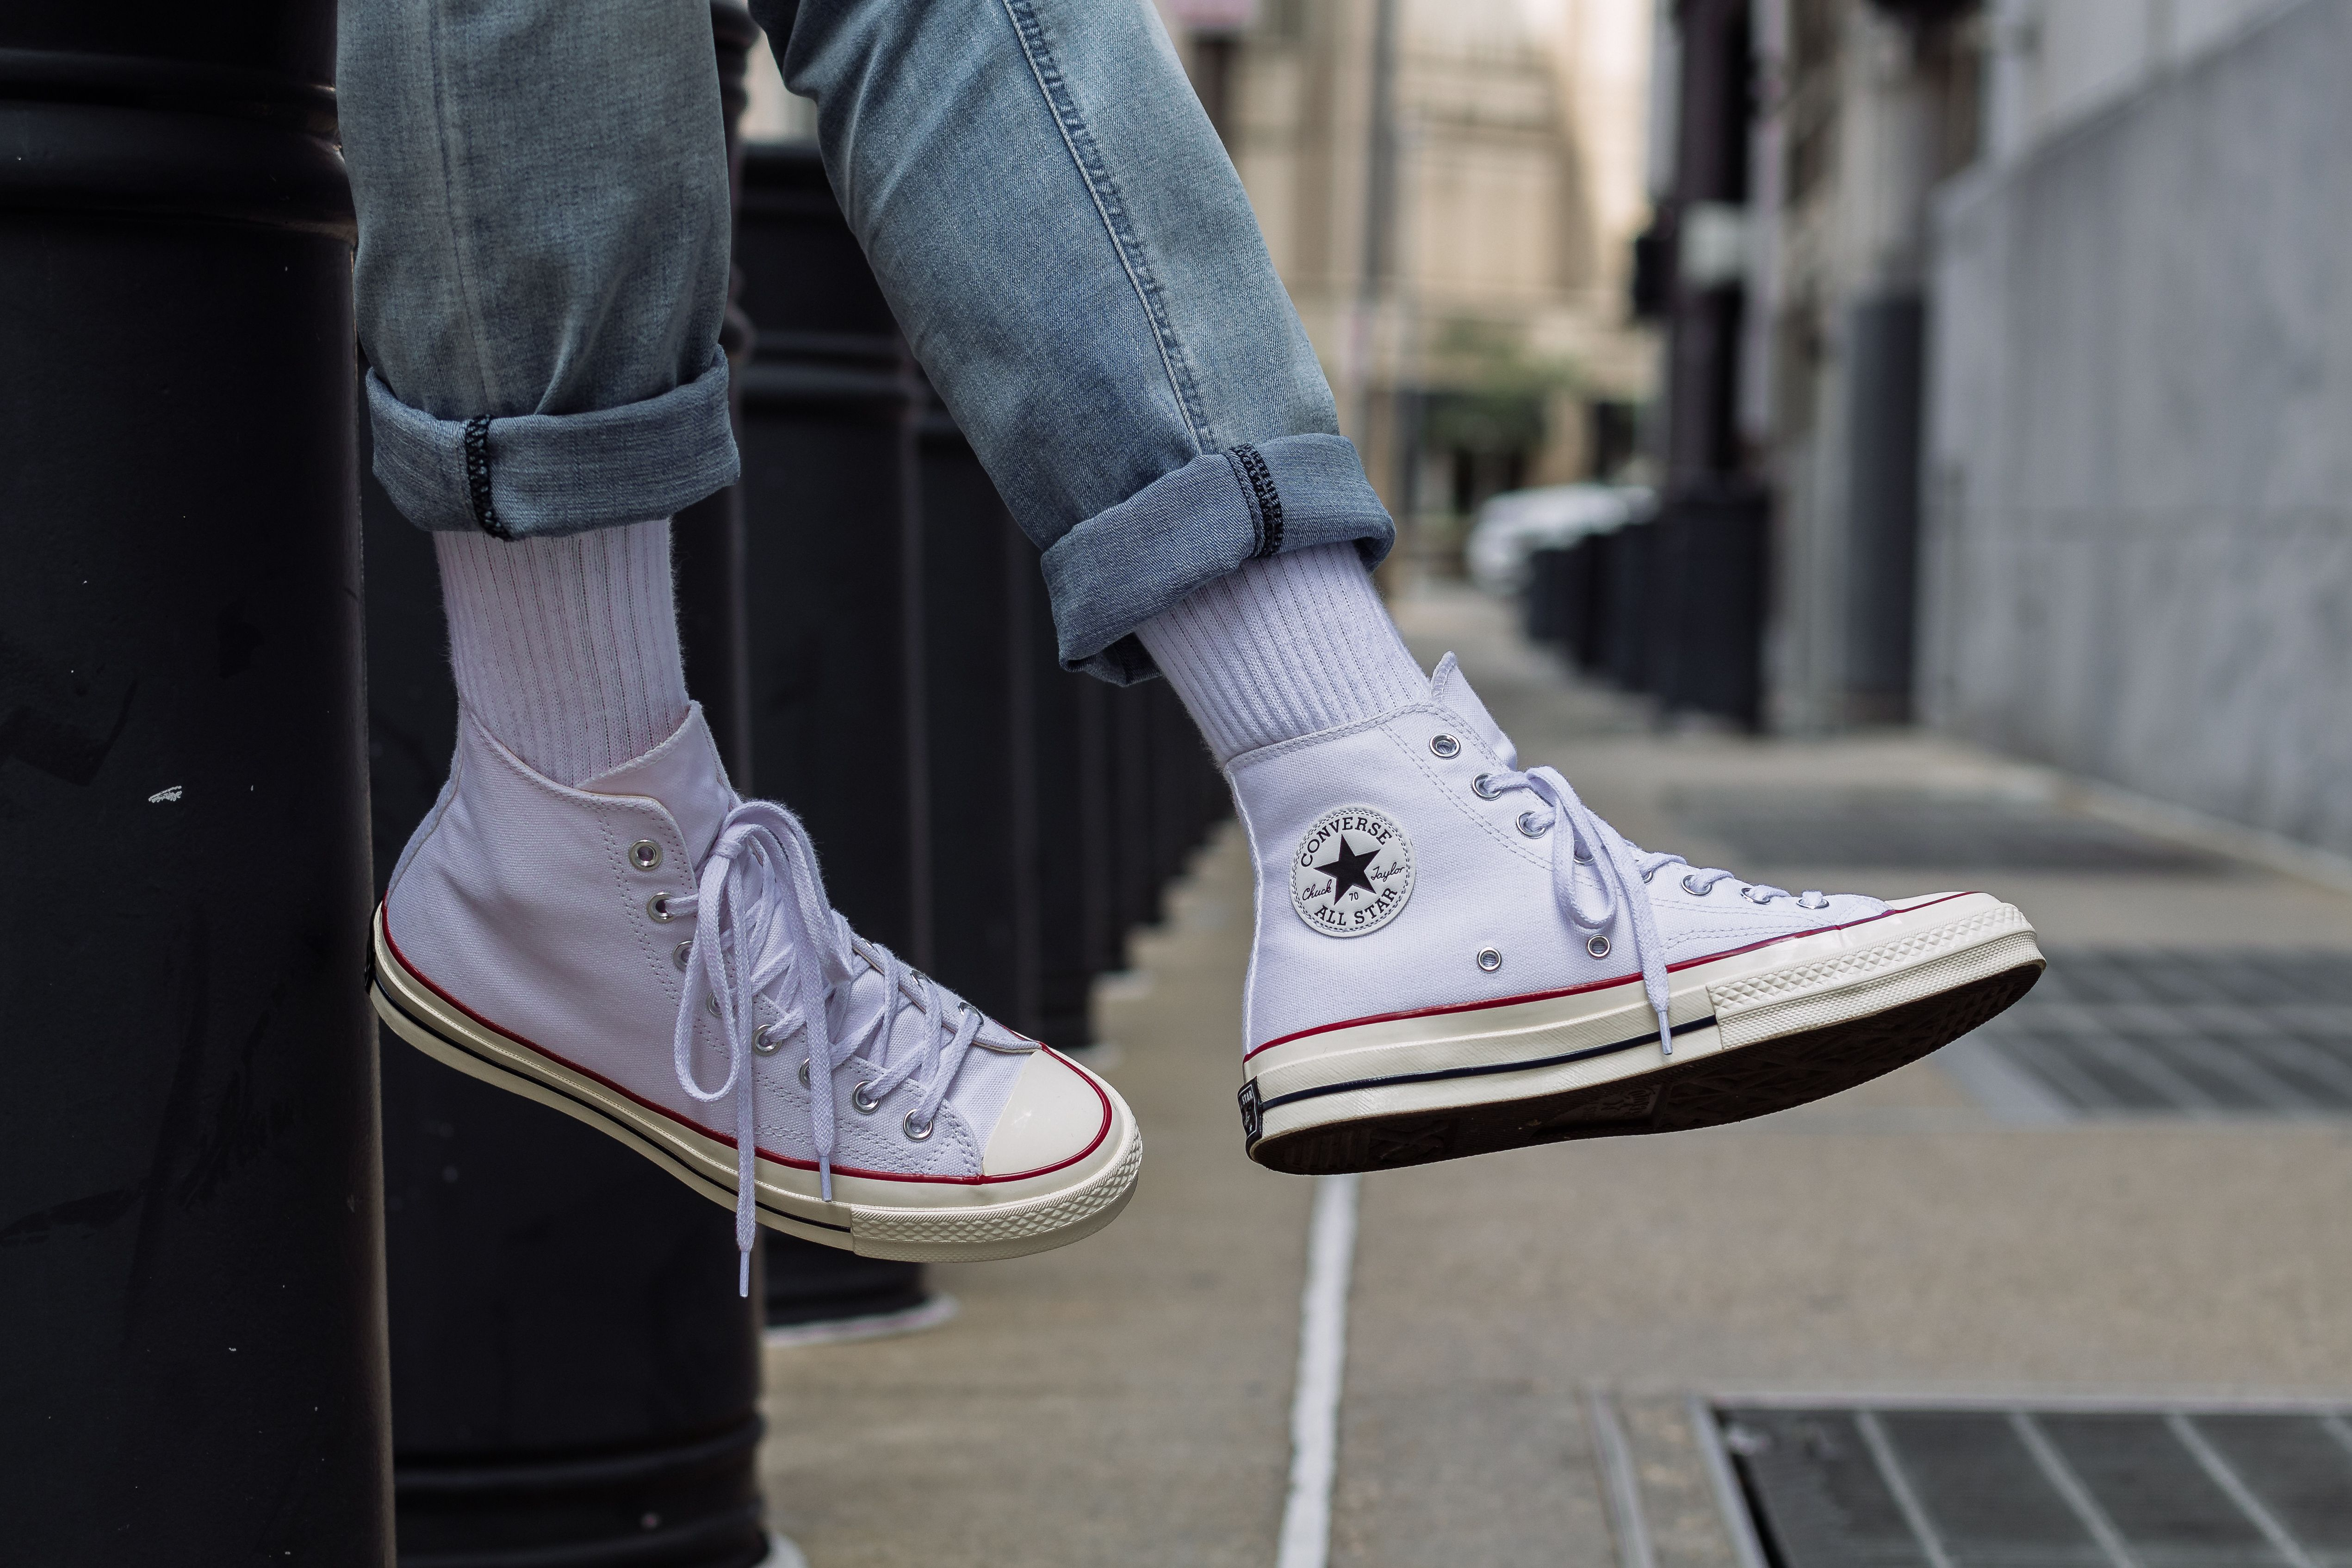 Converse Shoes For Women Best Combos 2020 –